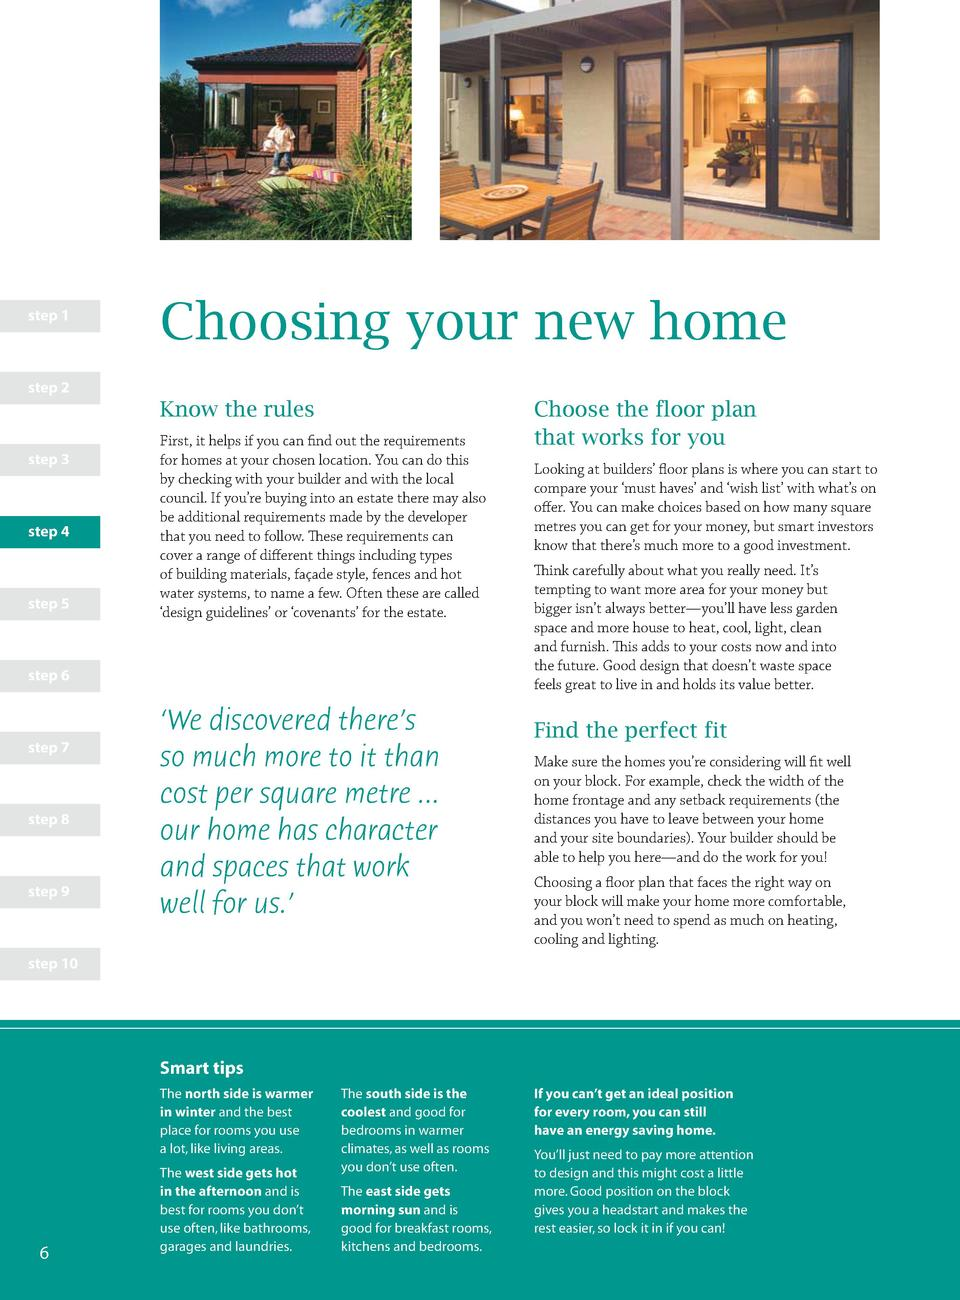 step 1  Choosing your new home  step 2  Know the rules step 3  step 4  step 5  First, it helps if you can find out the req...